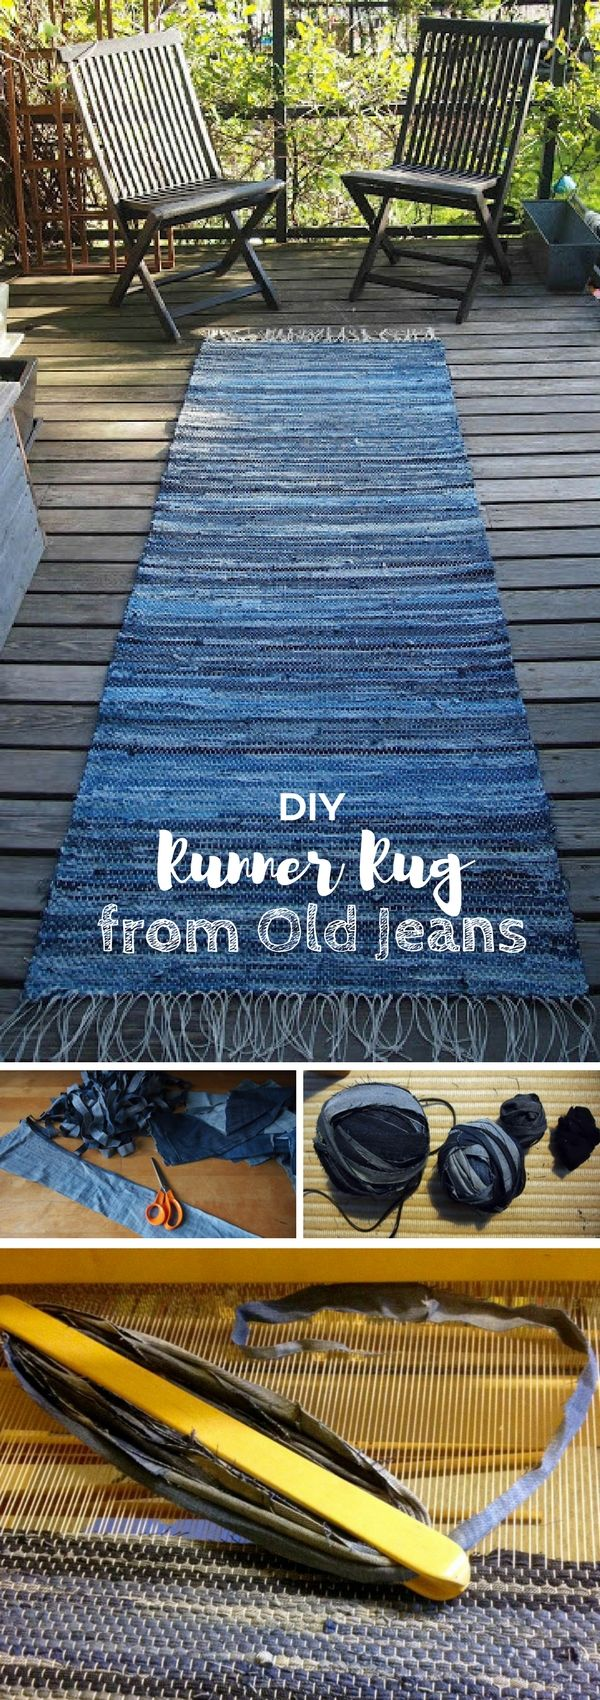 Check out the tutorial on how to make a DIY runner rug from old jeans denim @istandarddesign